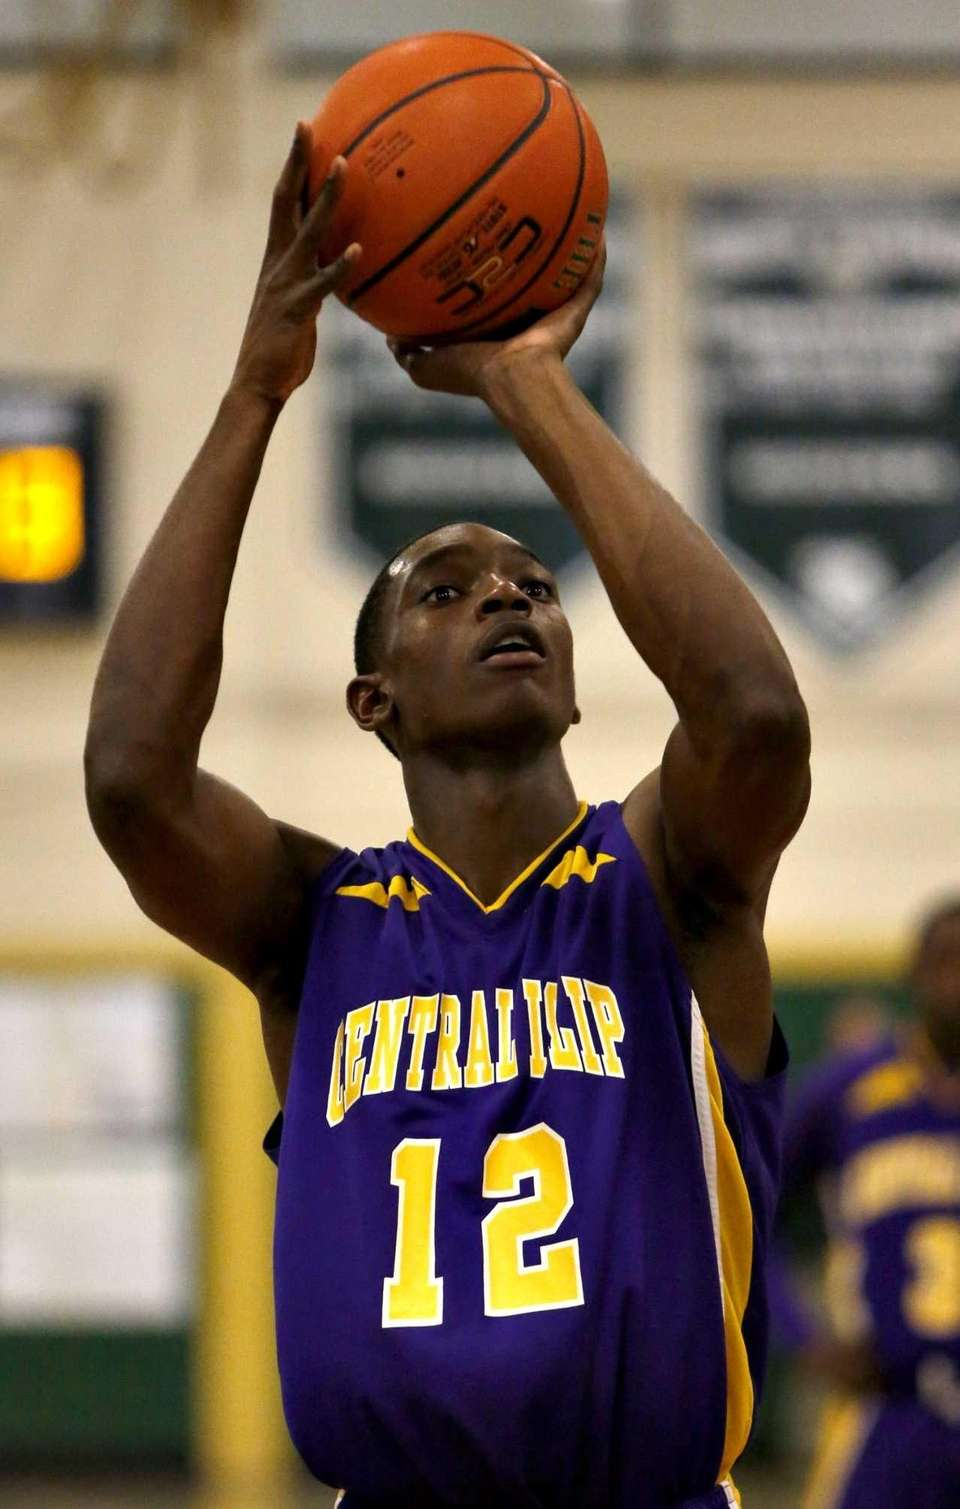 Central Islip's Tim McKenzie lines up a foul